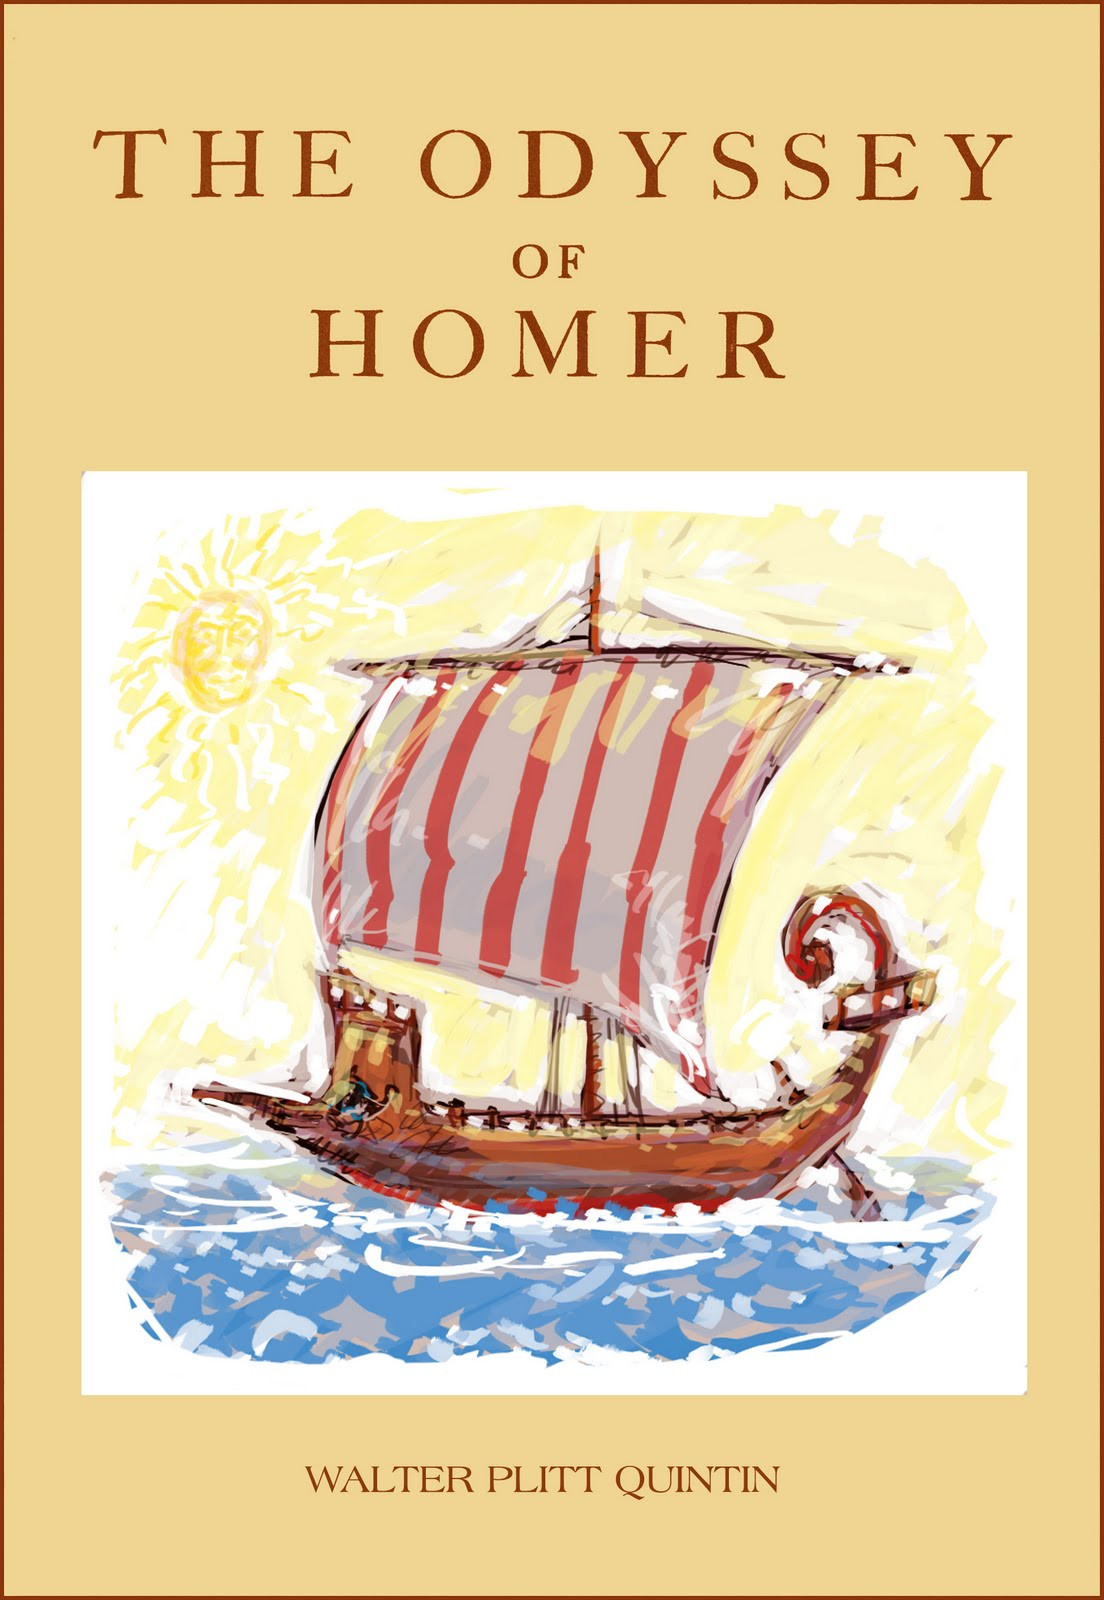 an analysis of homers epic poem the iliad Homer's address to the muse begins the idea that the iliad is a poem inspired by the gods, an epic undertaking that will retrace a myth already well known to homer's ancient greek audience.